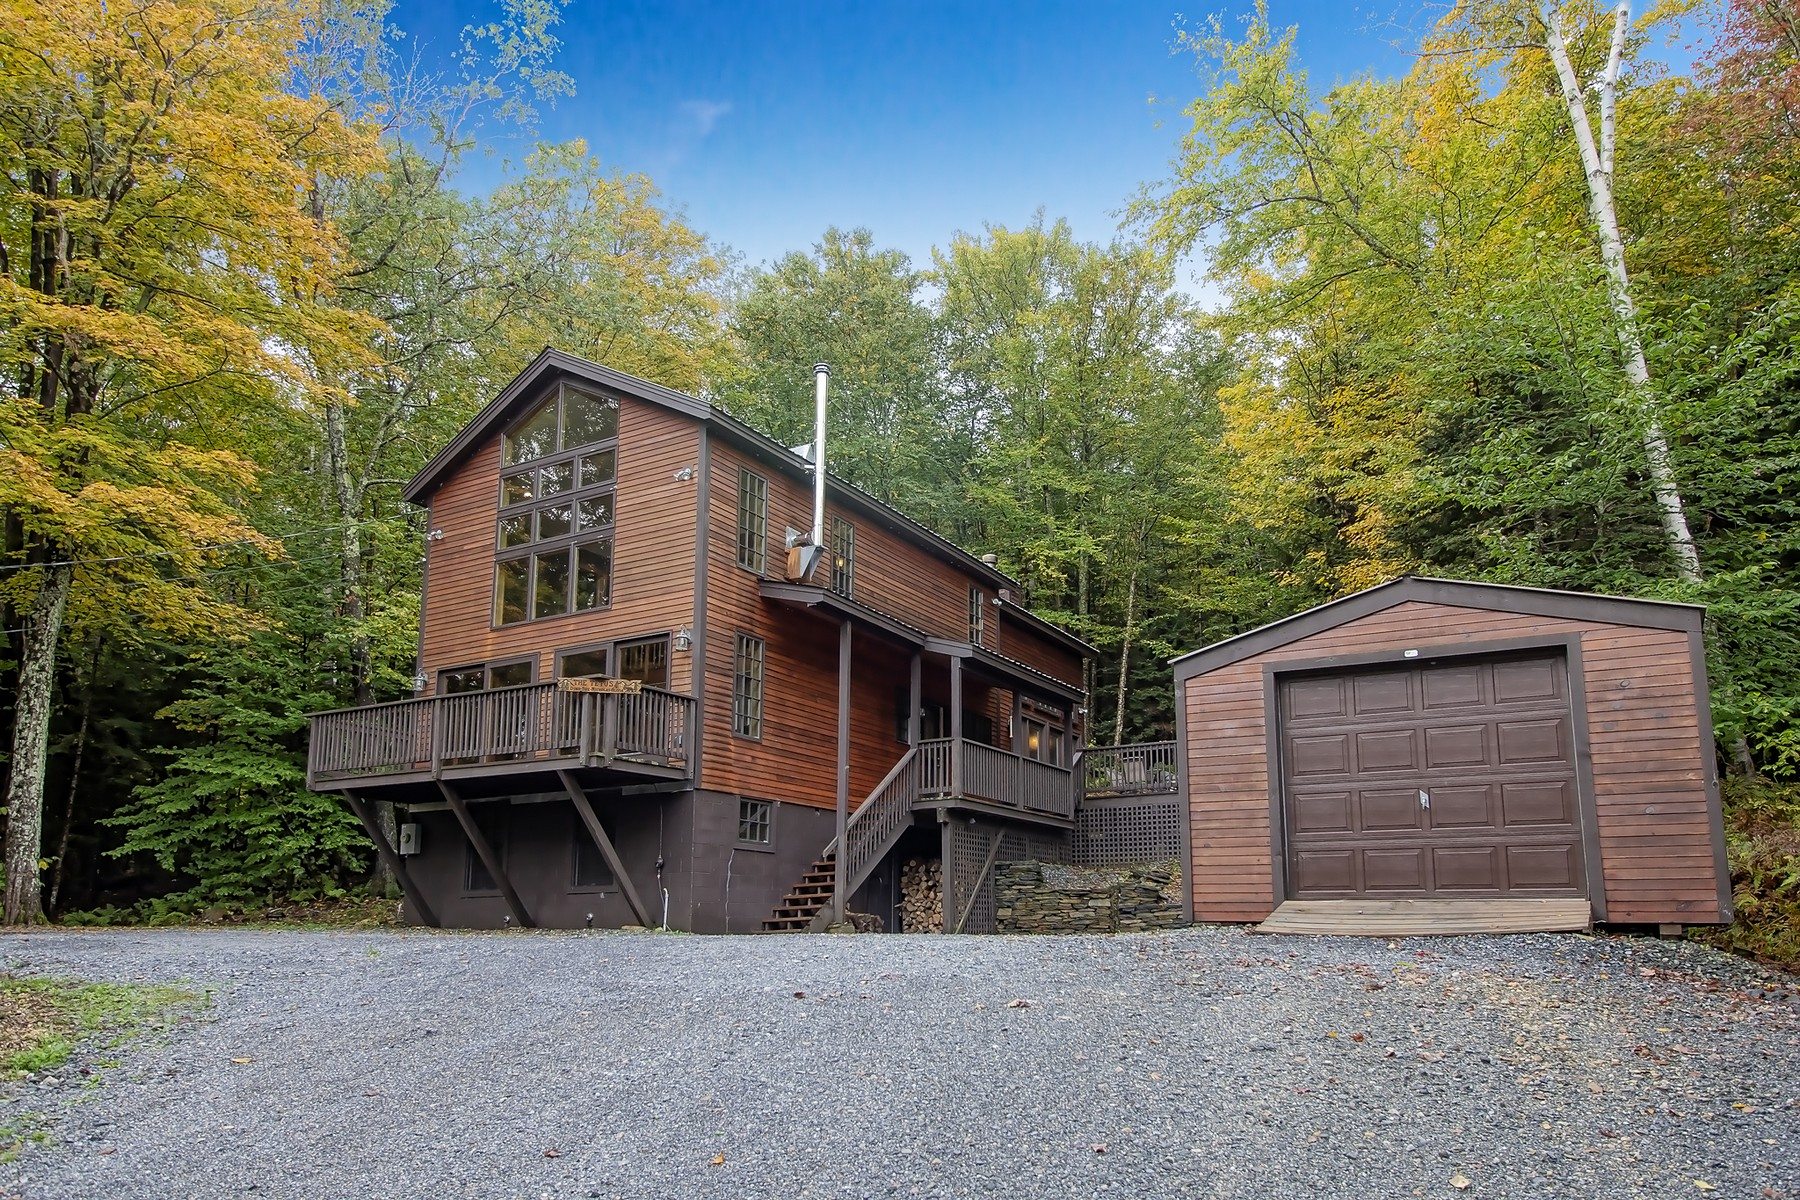 Single Family Home for Sale at Serene Contemporary Home 10 Ives Rd Wilmington, Vermont 05363 United States